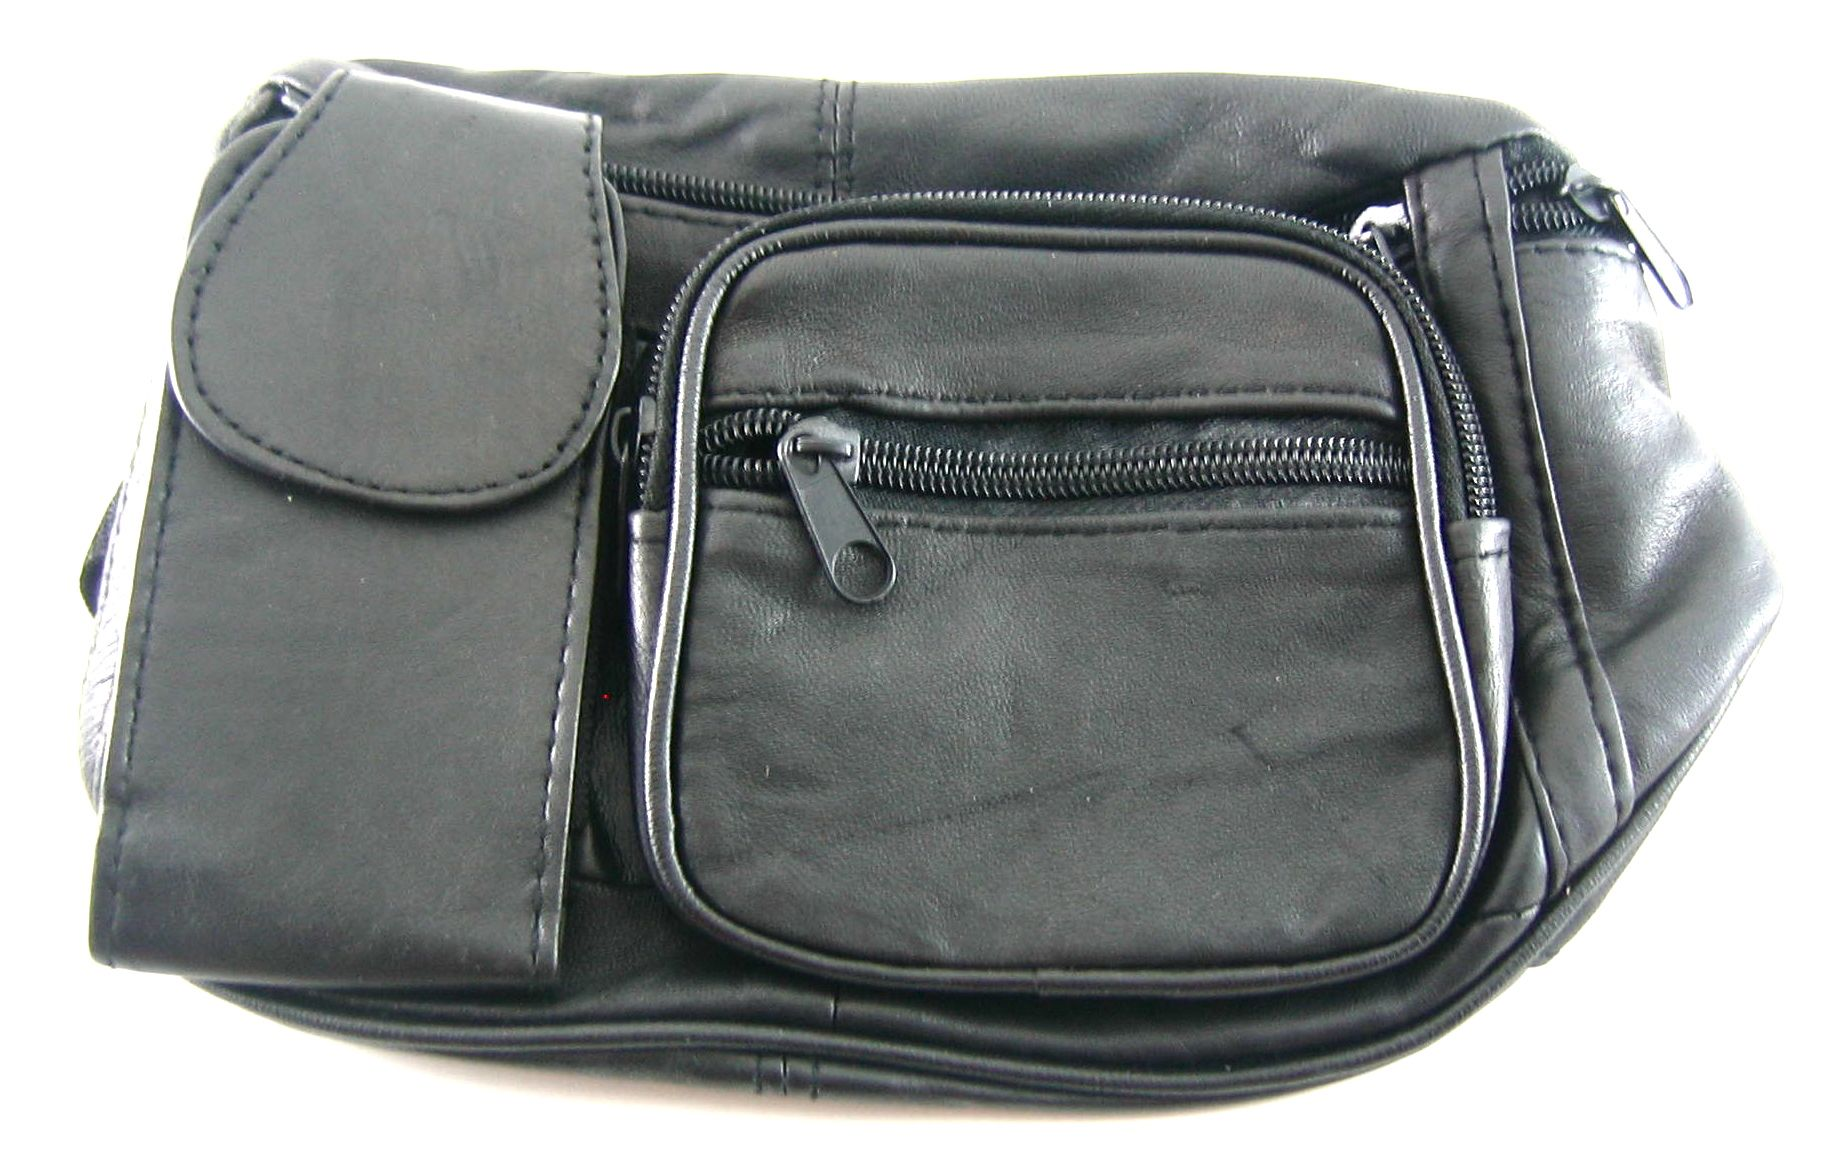 CuffCrazy Black Genuine Leather Fanny Pack Waist Bag w/Cell Phone Pocket Holder at Sears.com